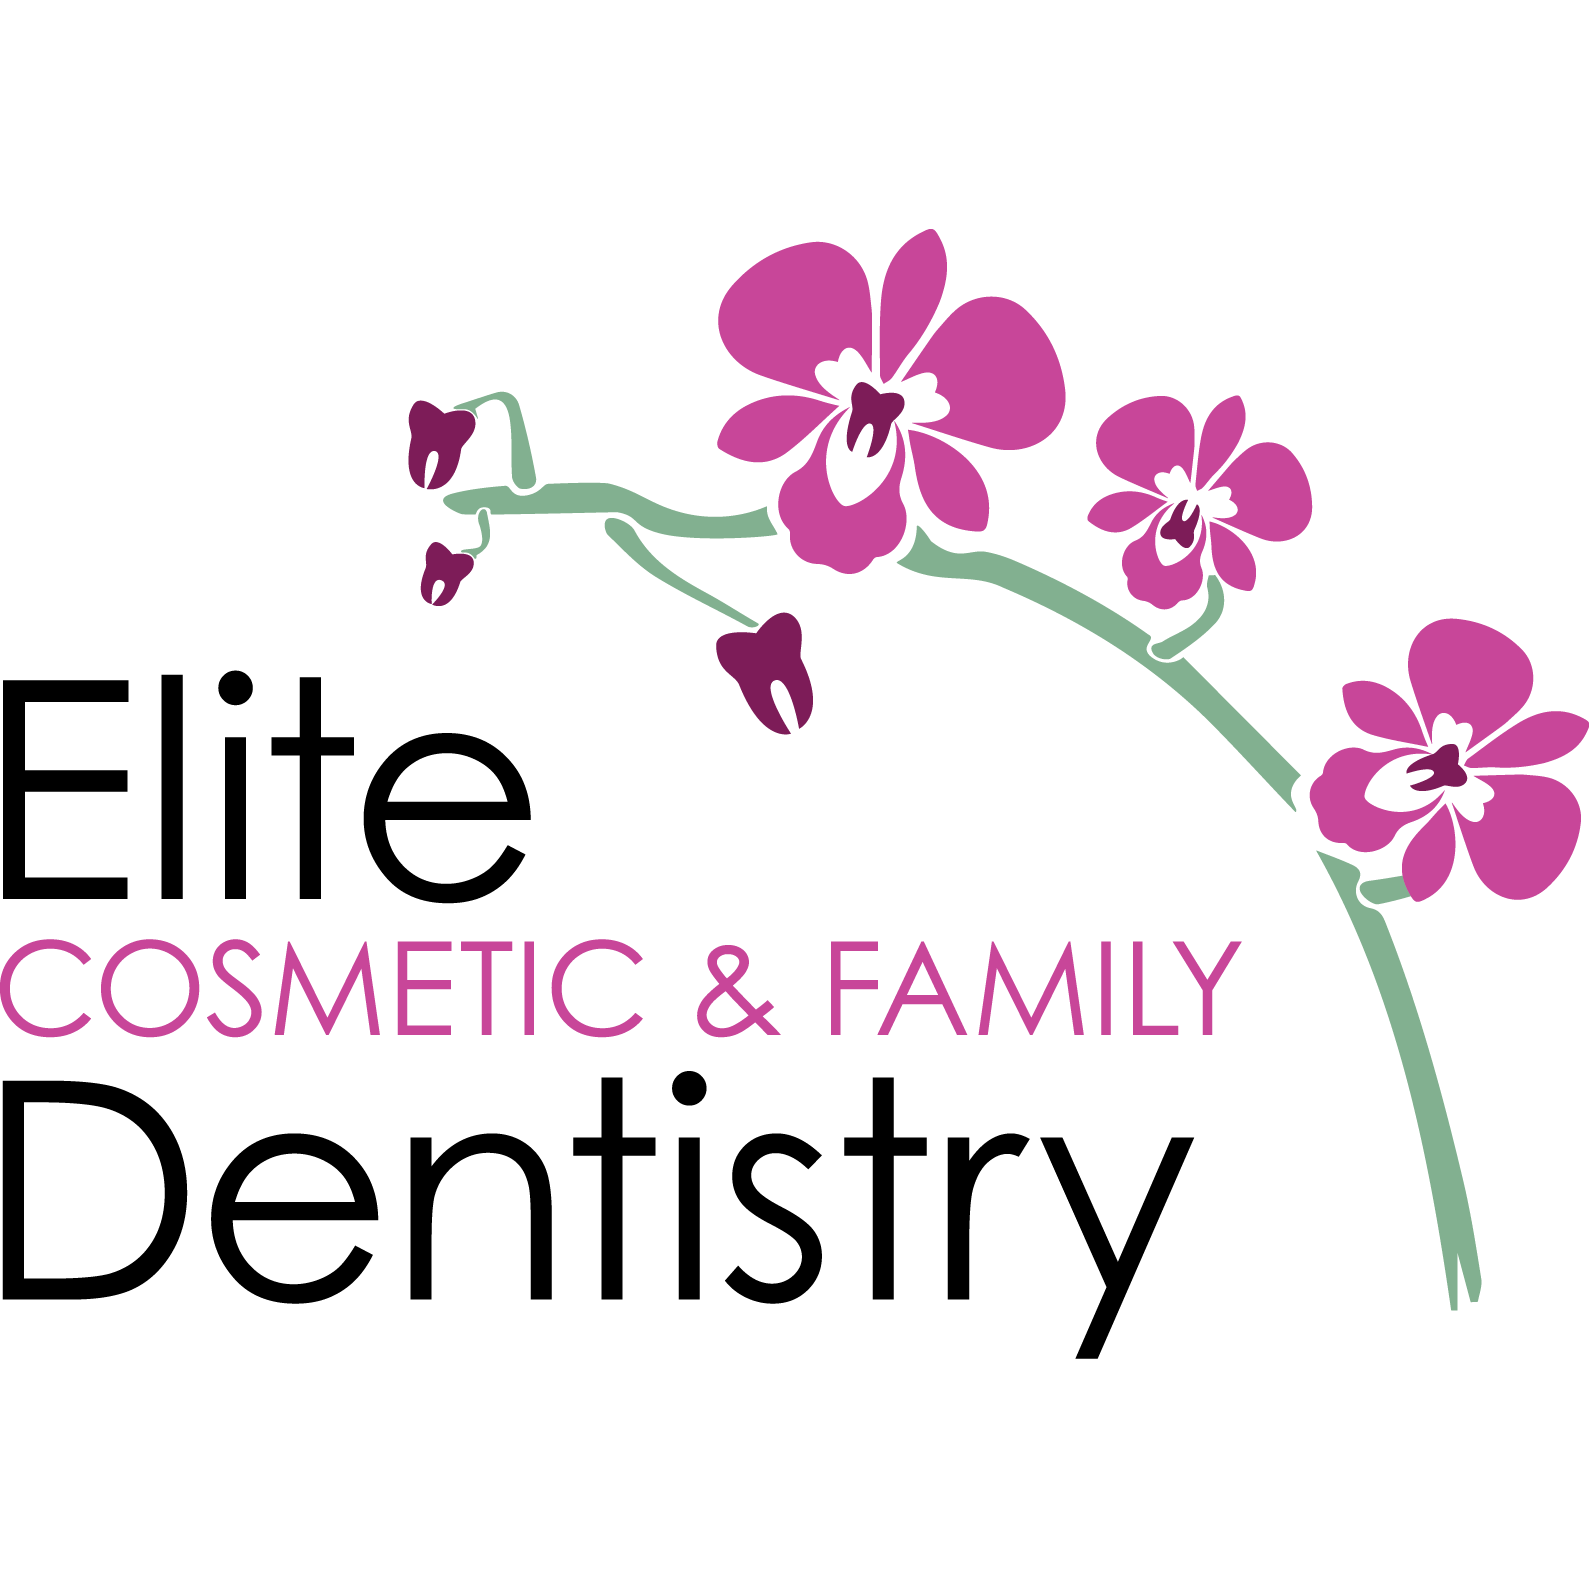 Elite Cosmetic And Family Dentistry, Alexis Mai, DMD